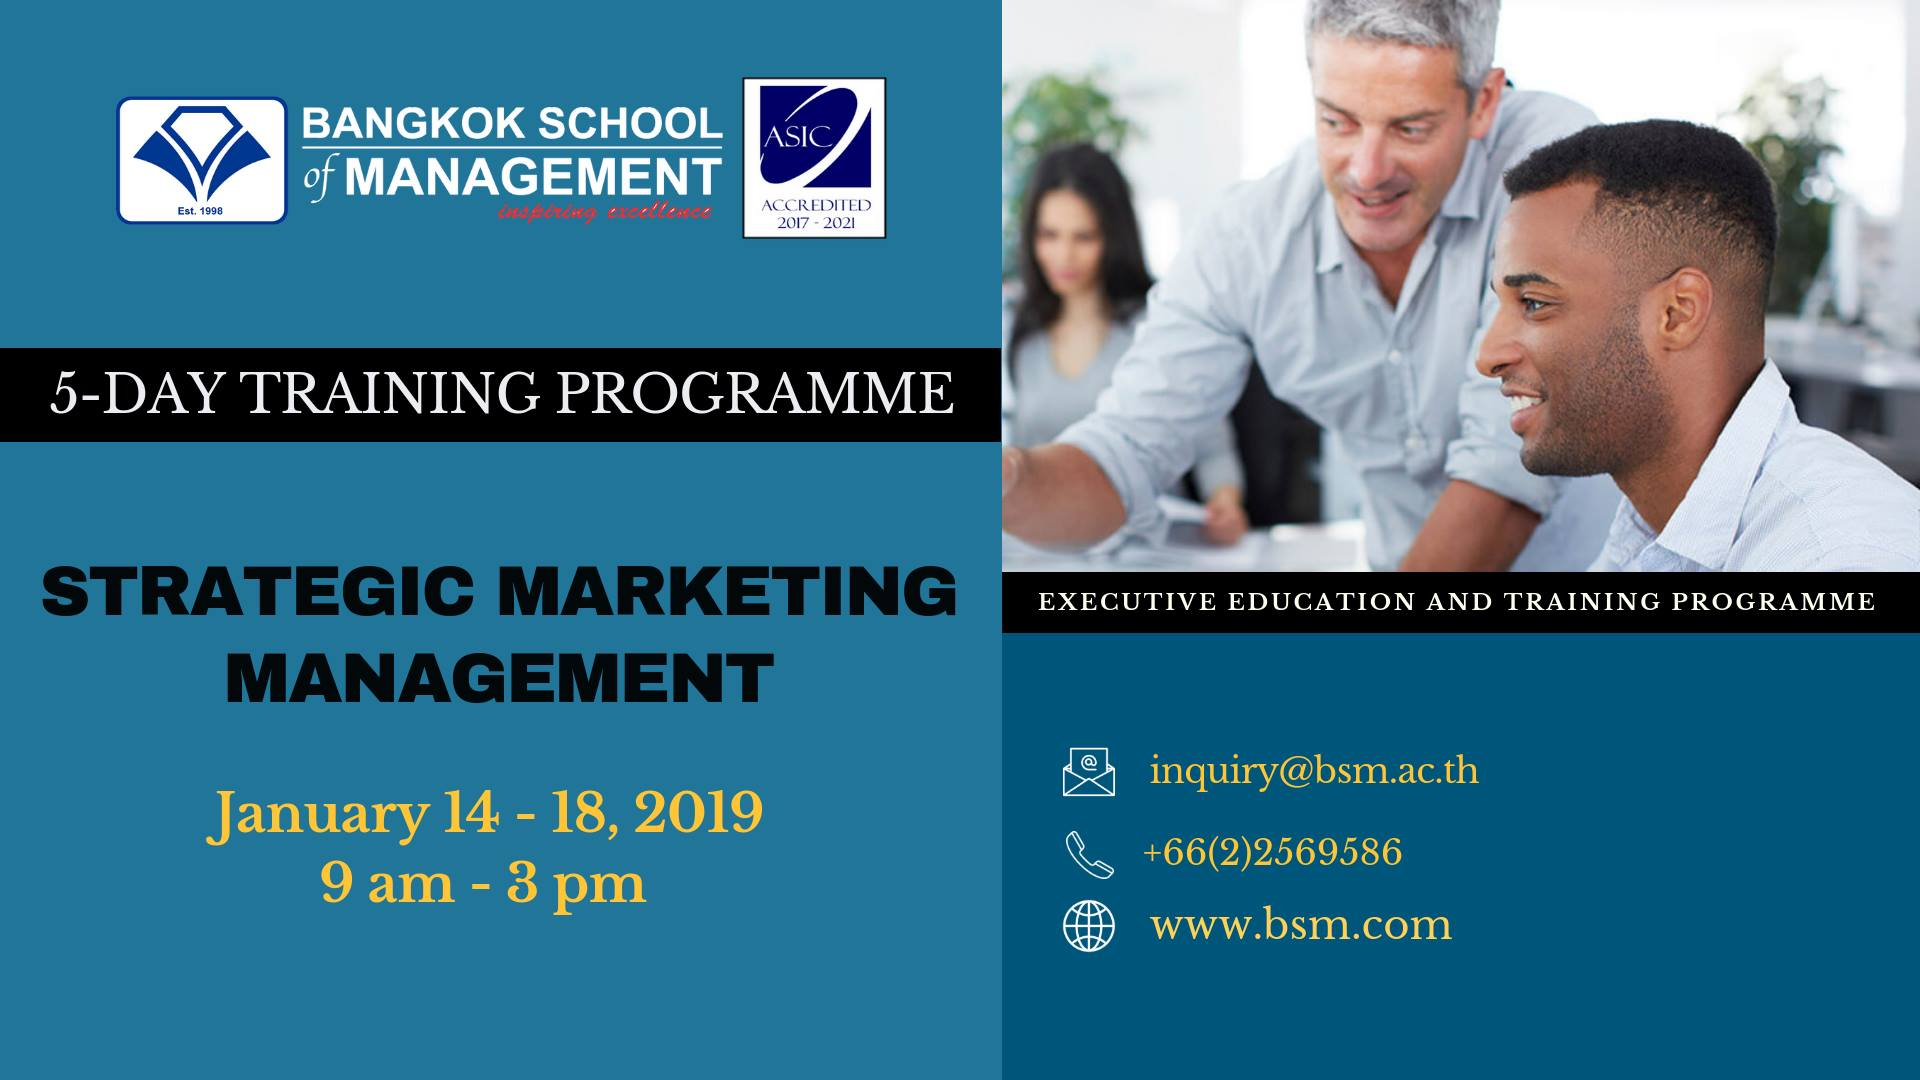 Date: January 14 – 18, 2019 Strategic Marketing Management